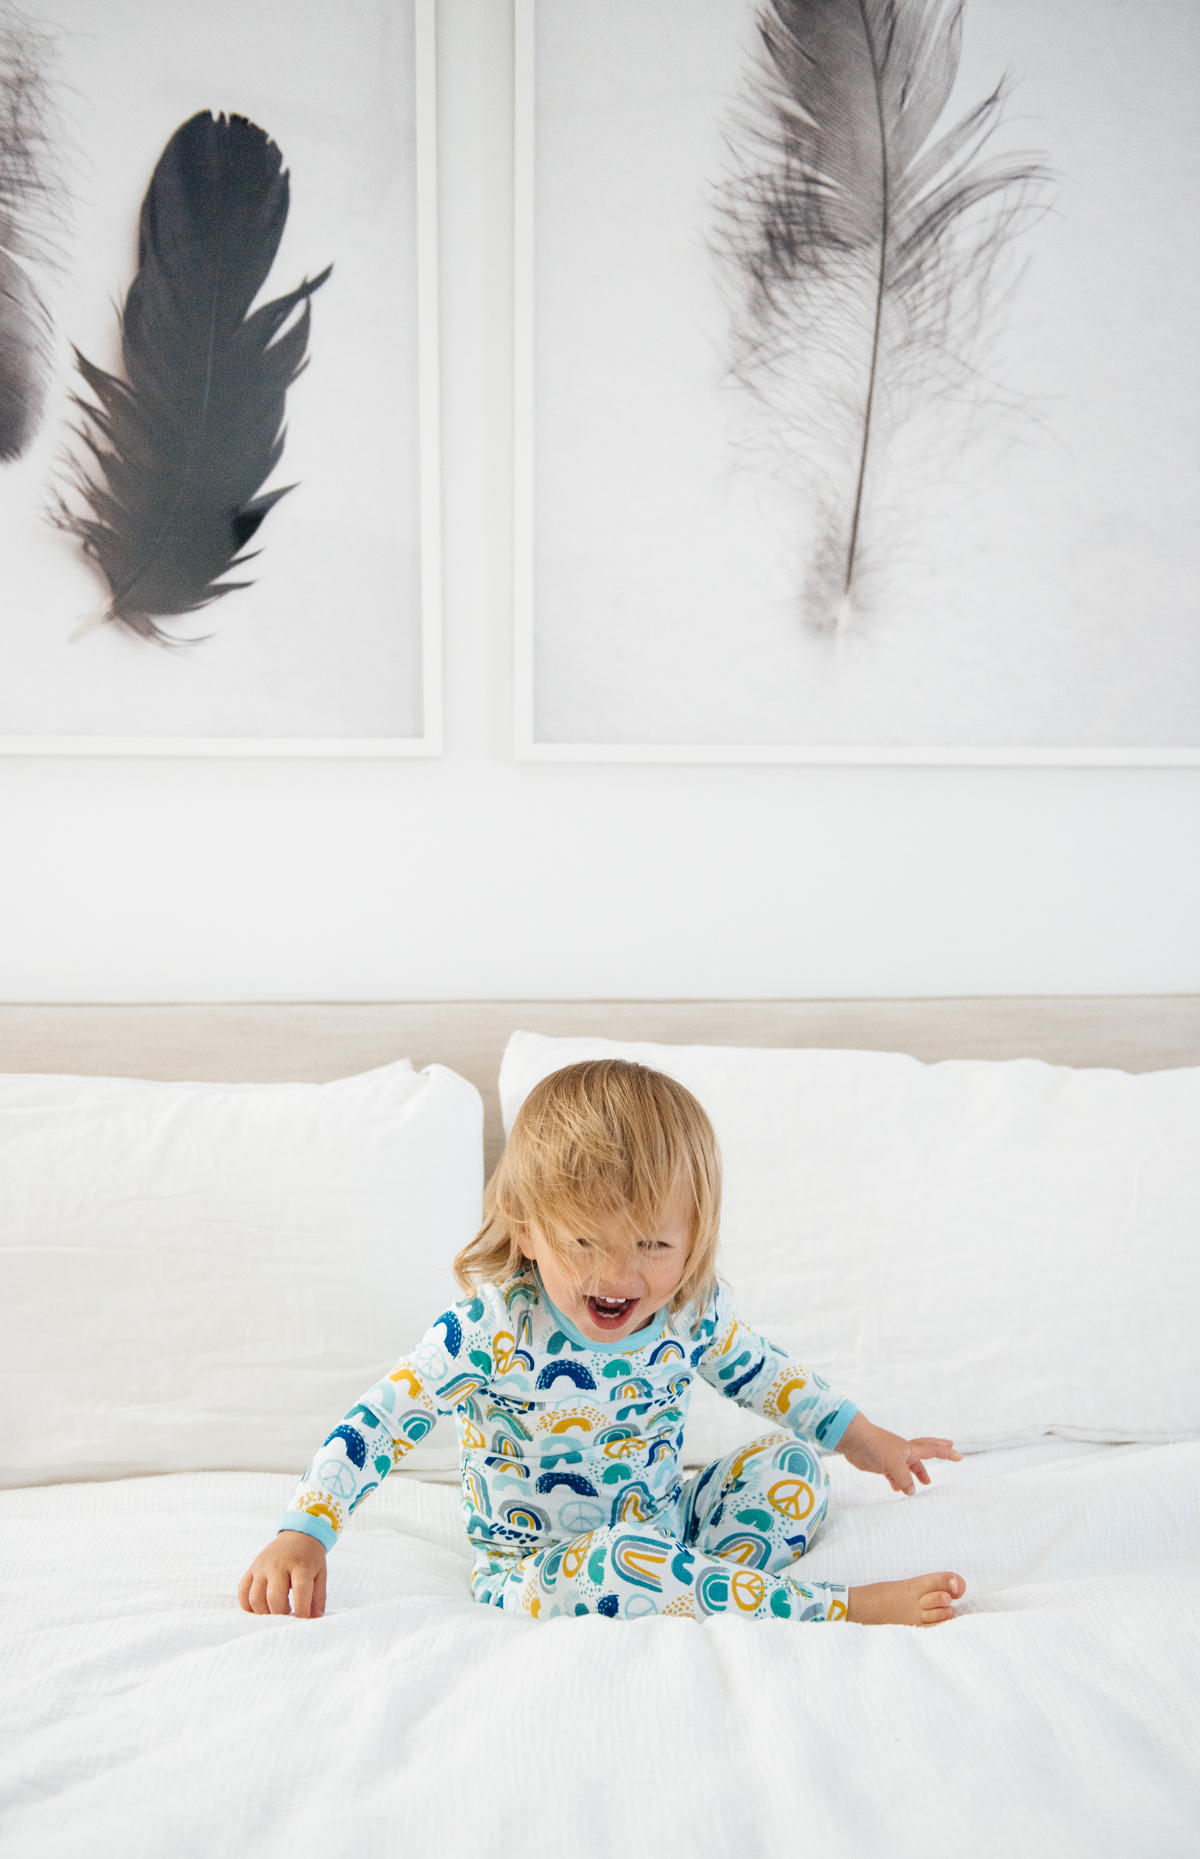 Toddler laughing on bed in Clover Baby & Kids pajamas celebrating Rainbow Baby, IVF, and Infertility